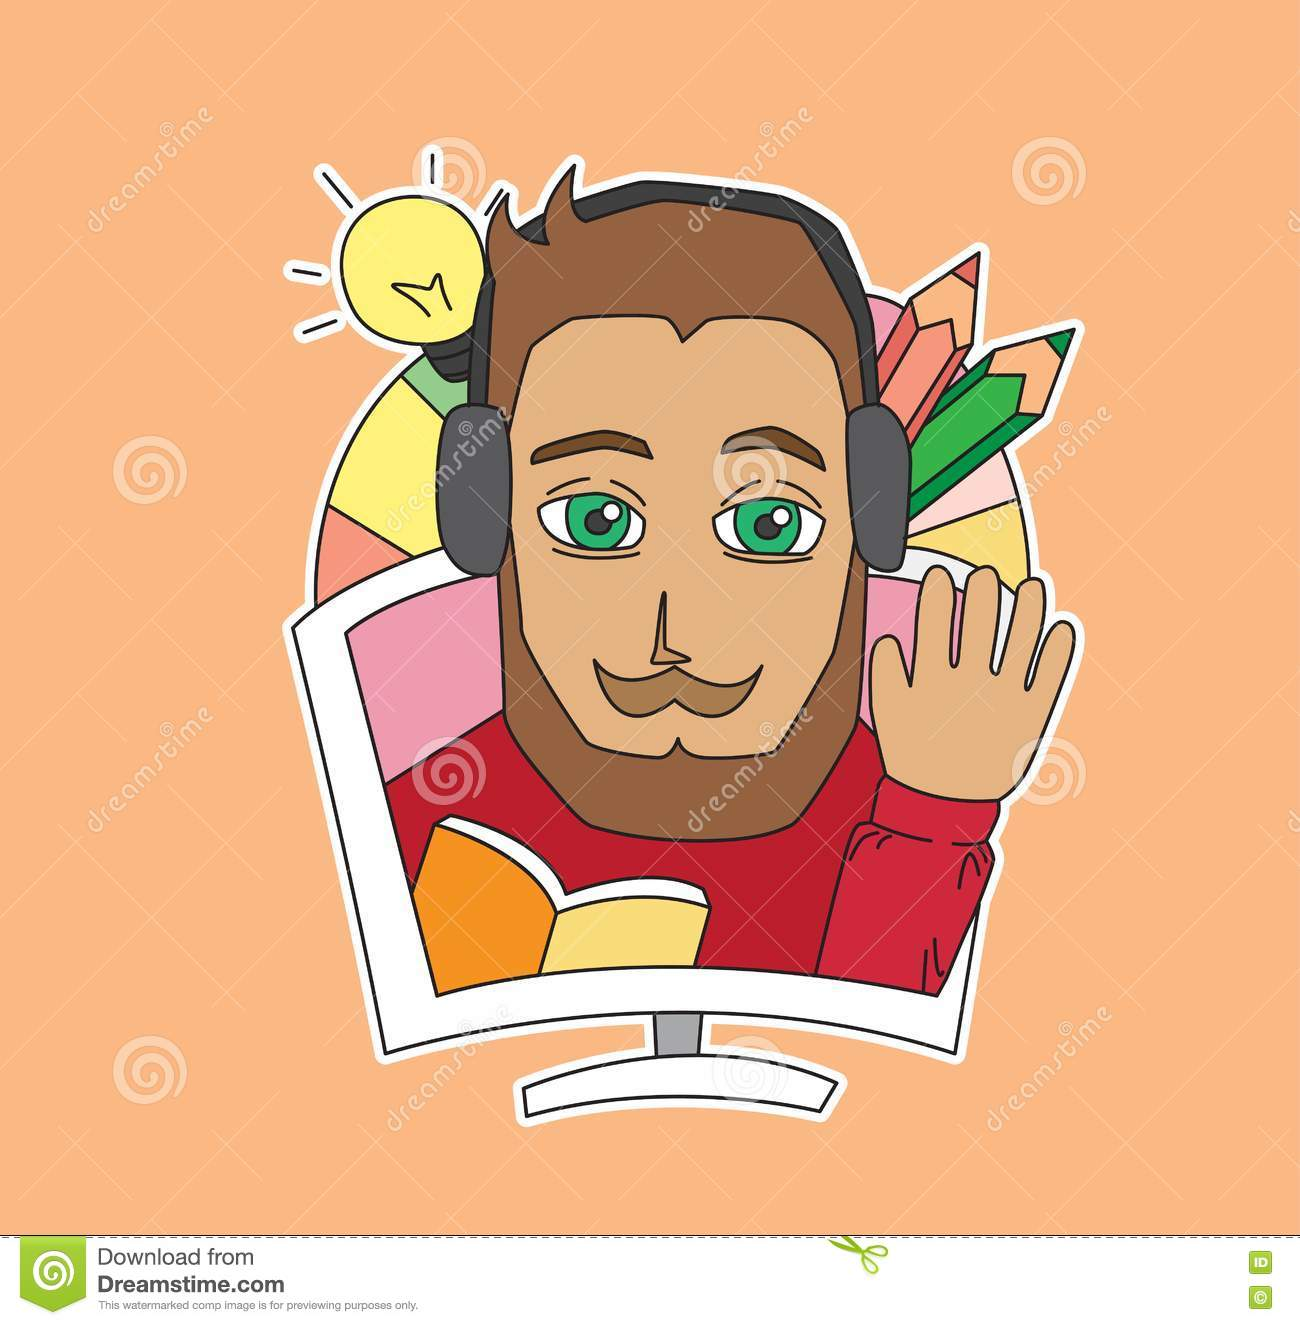 Beard man character sticker cartoon vector illustration